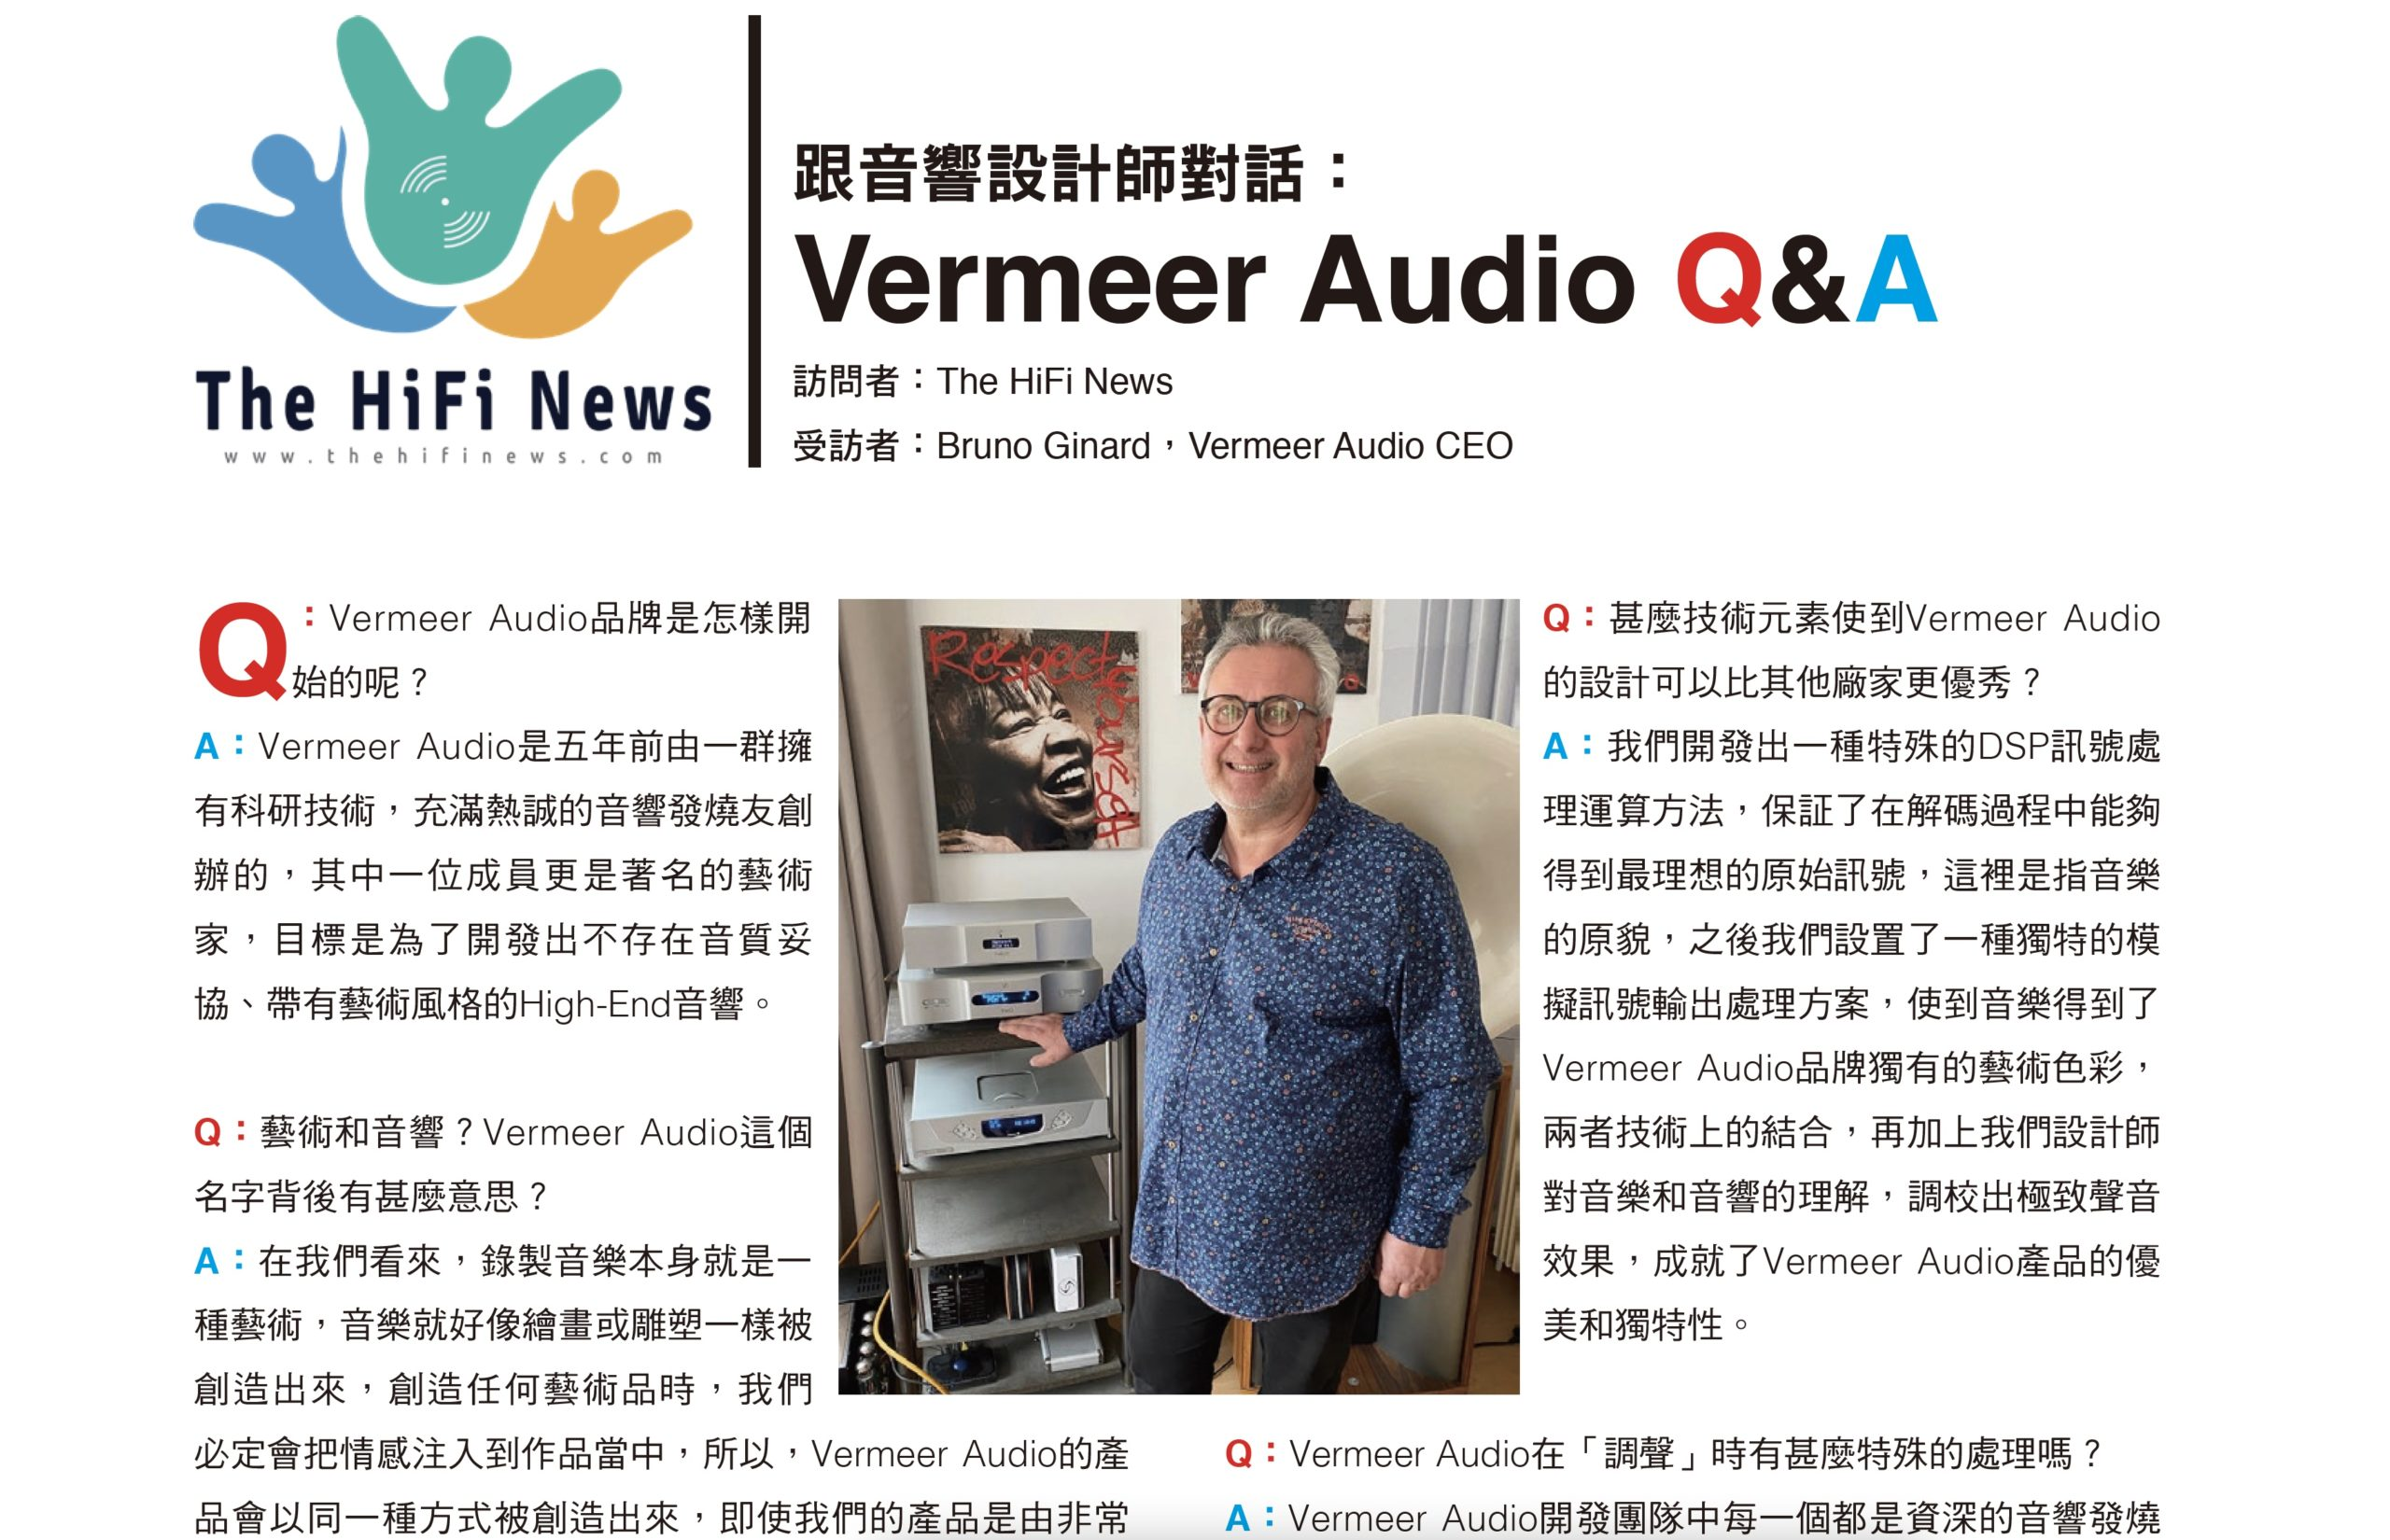 Vermeer Audio Q&A – The Hifi News